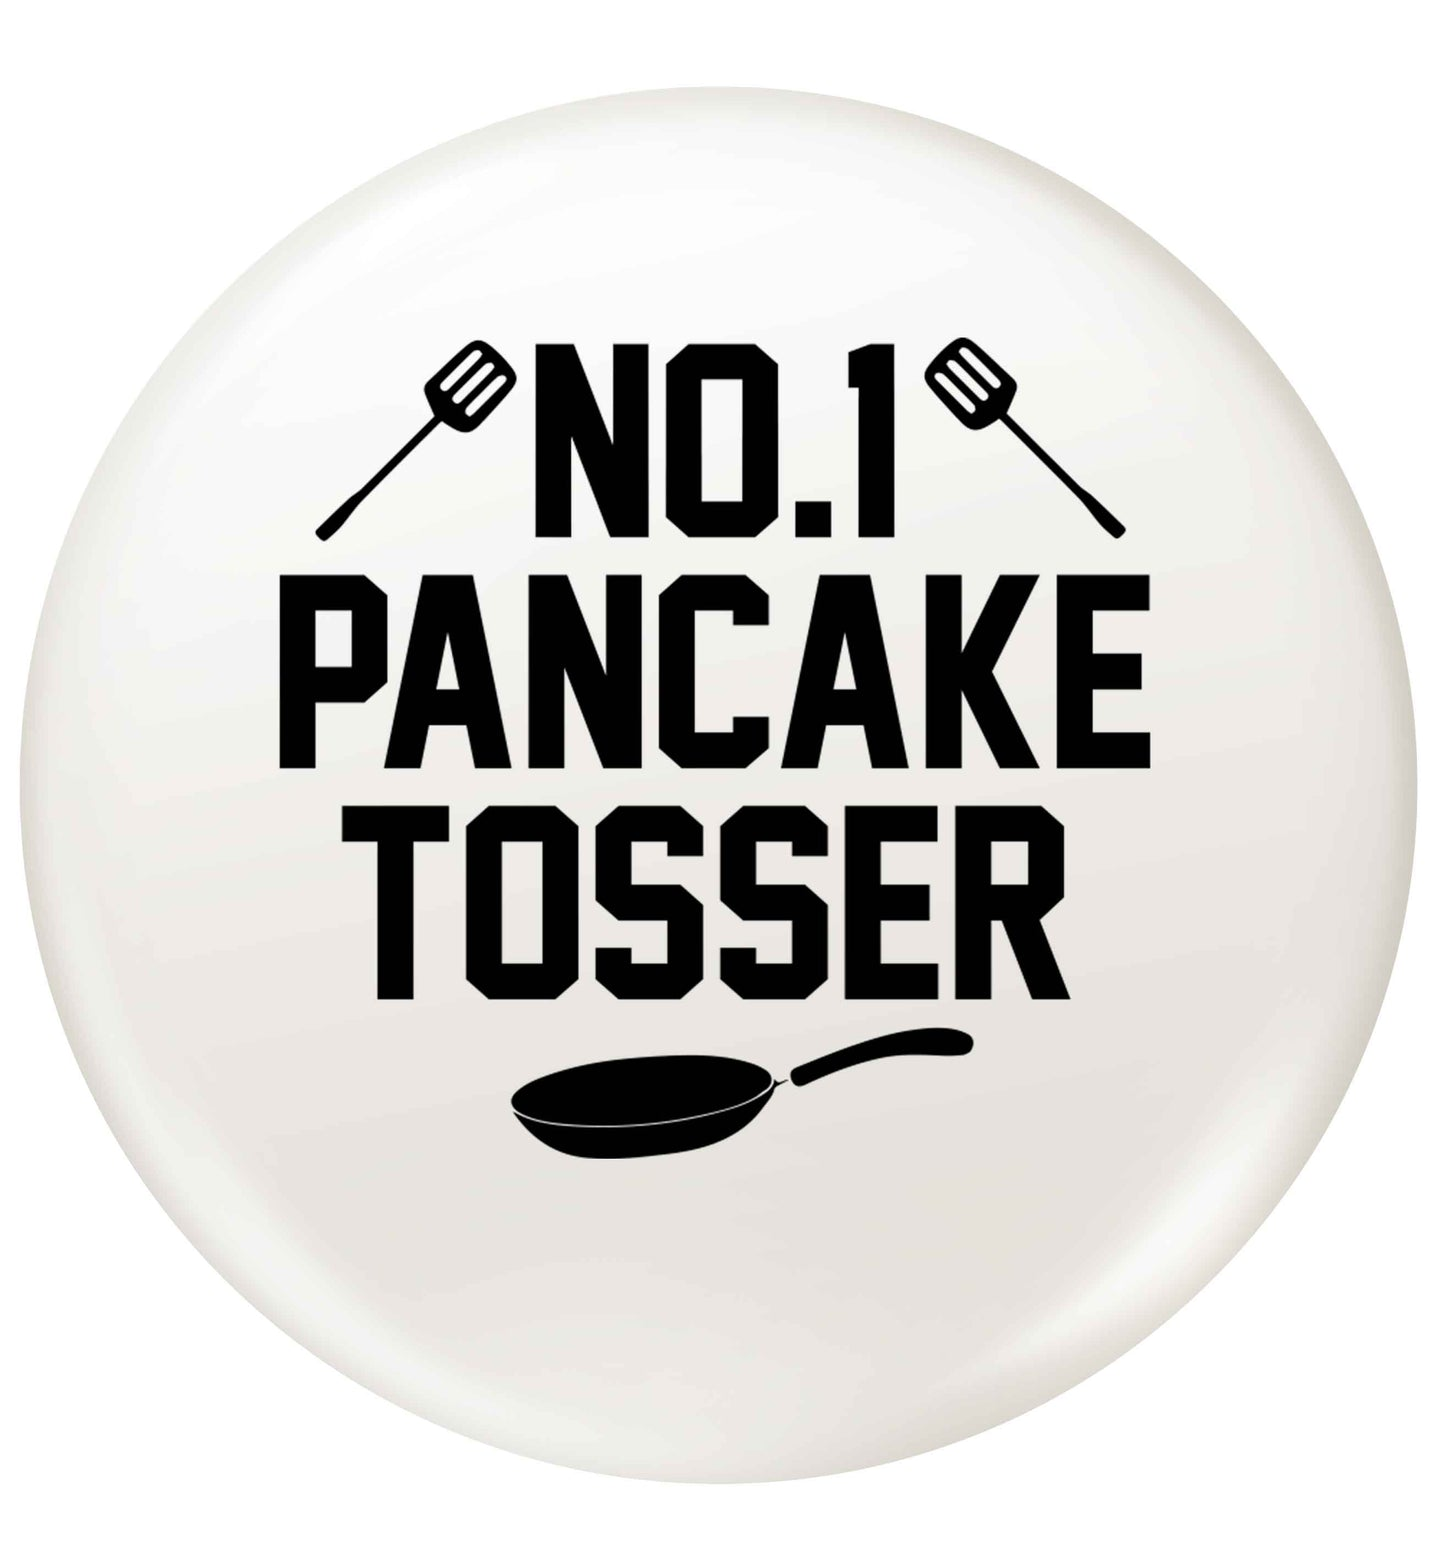 No.1 Pancake tosser small 25mm Pin badge